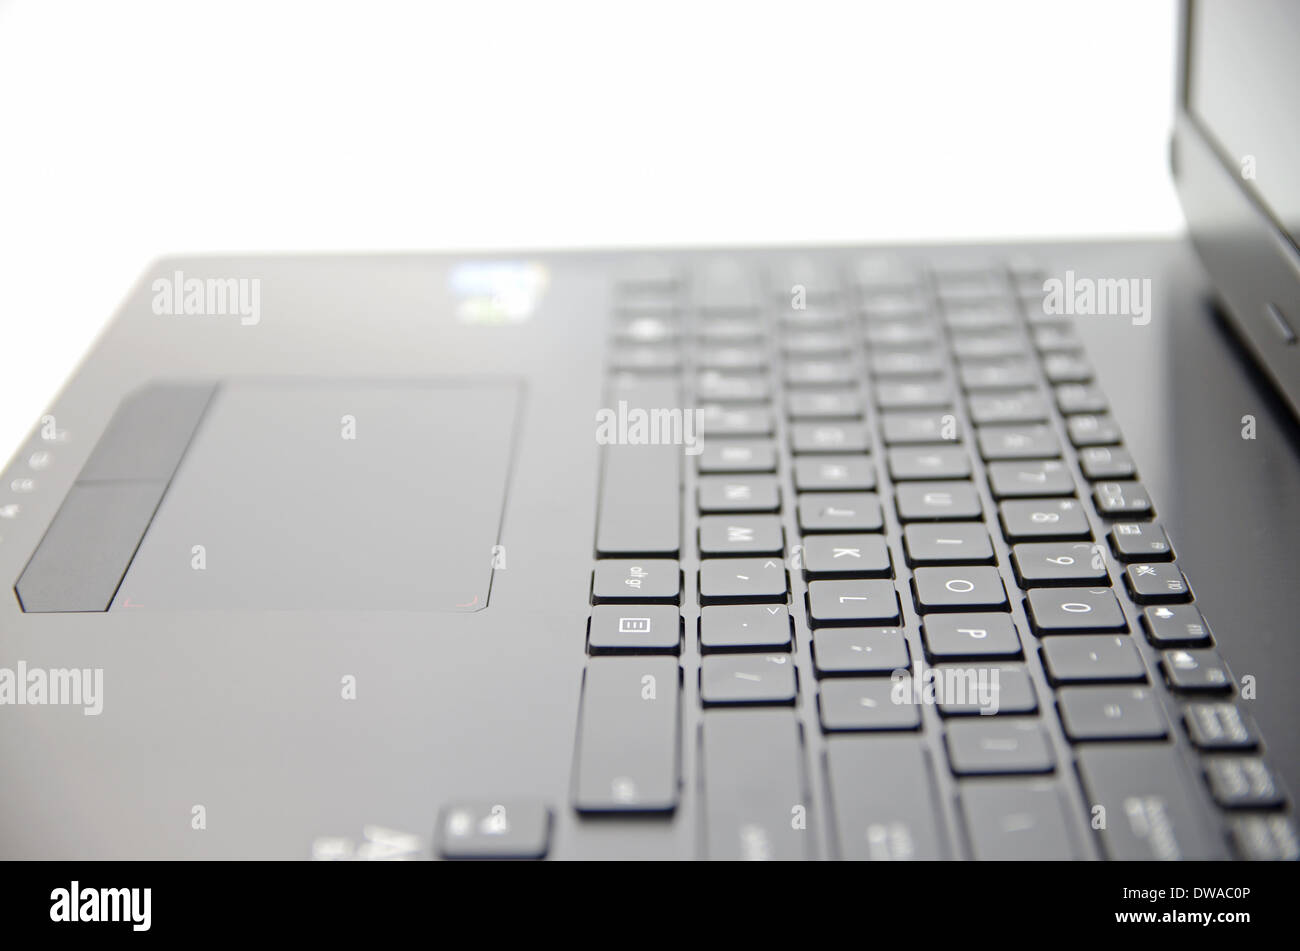 Black laptop keyboard and touchpad surface - Stock Image